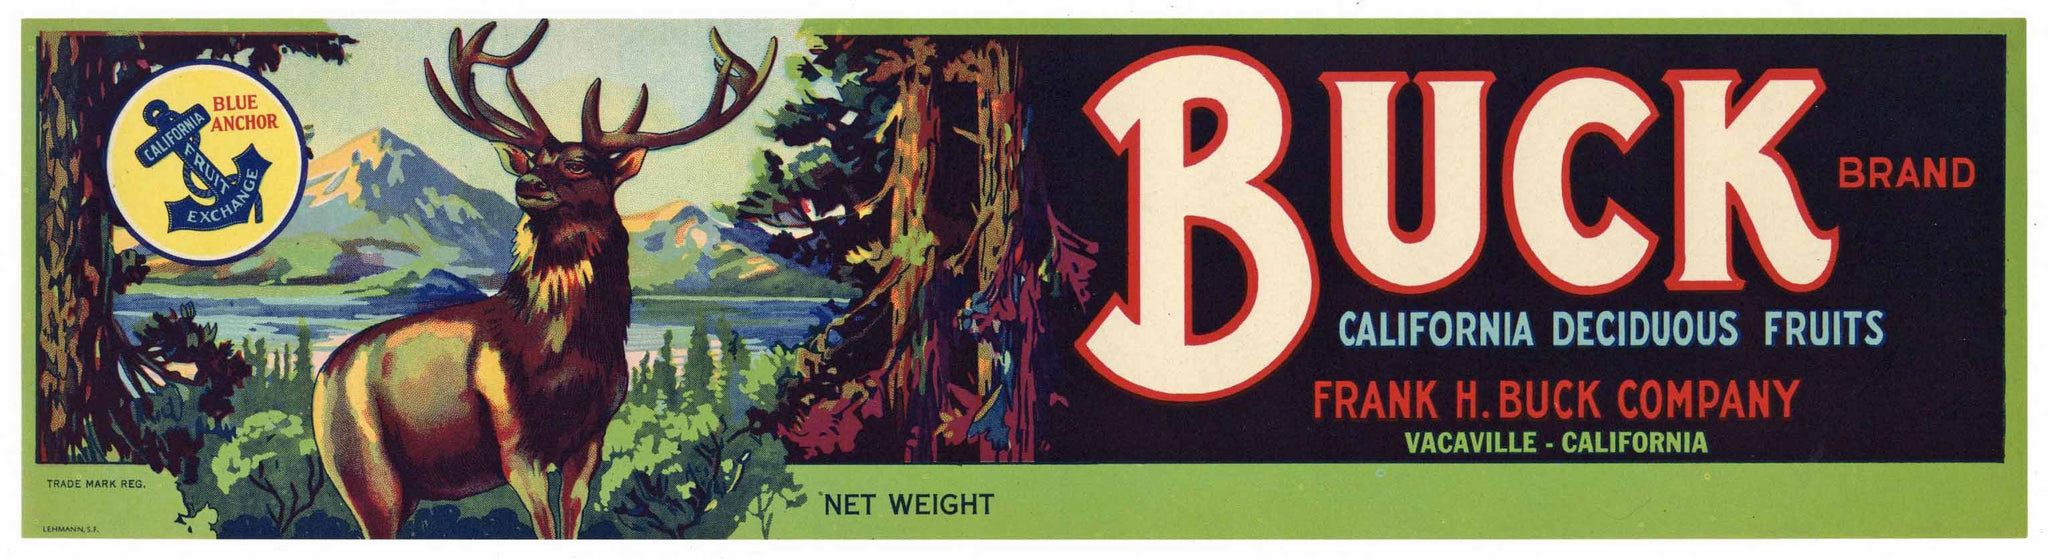 Buck Brand Vintage Vacaville Fruit Crate Label